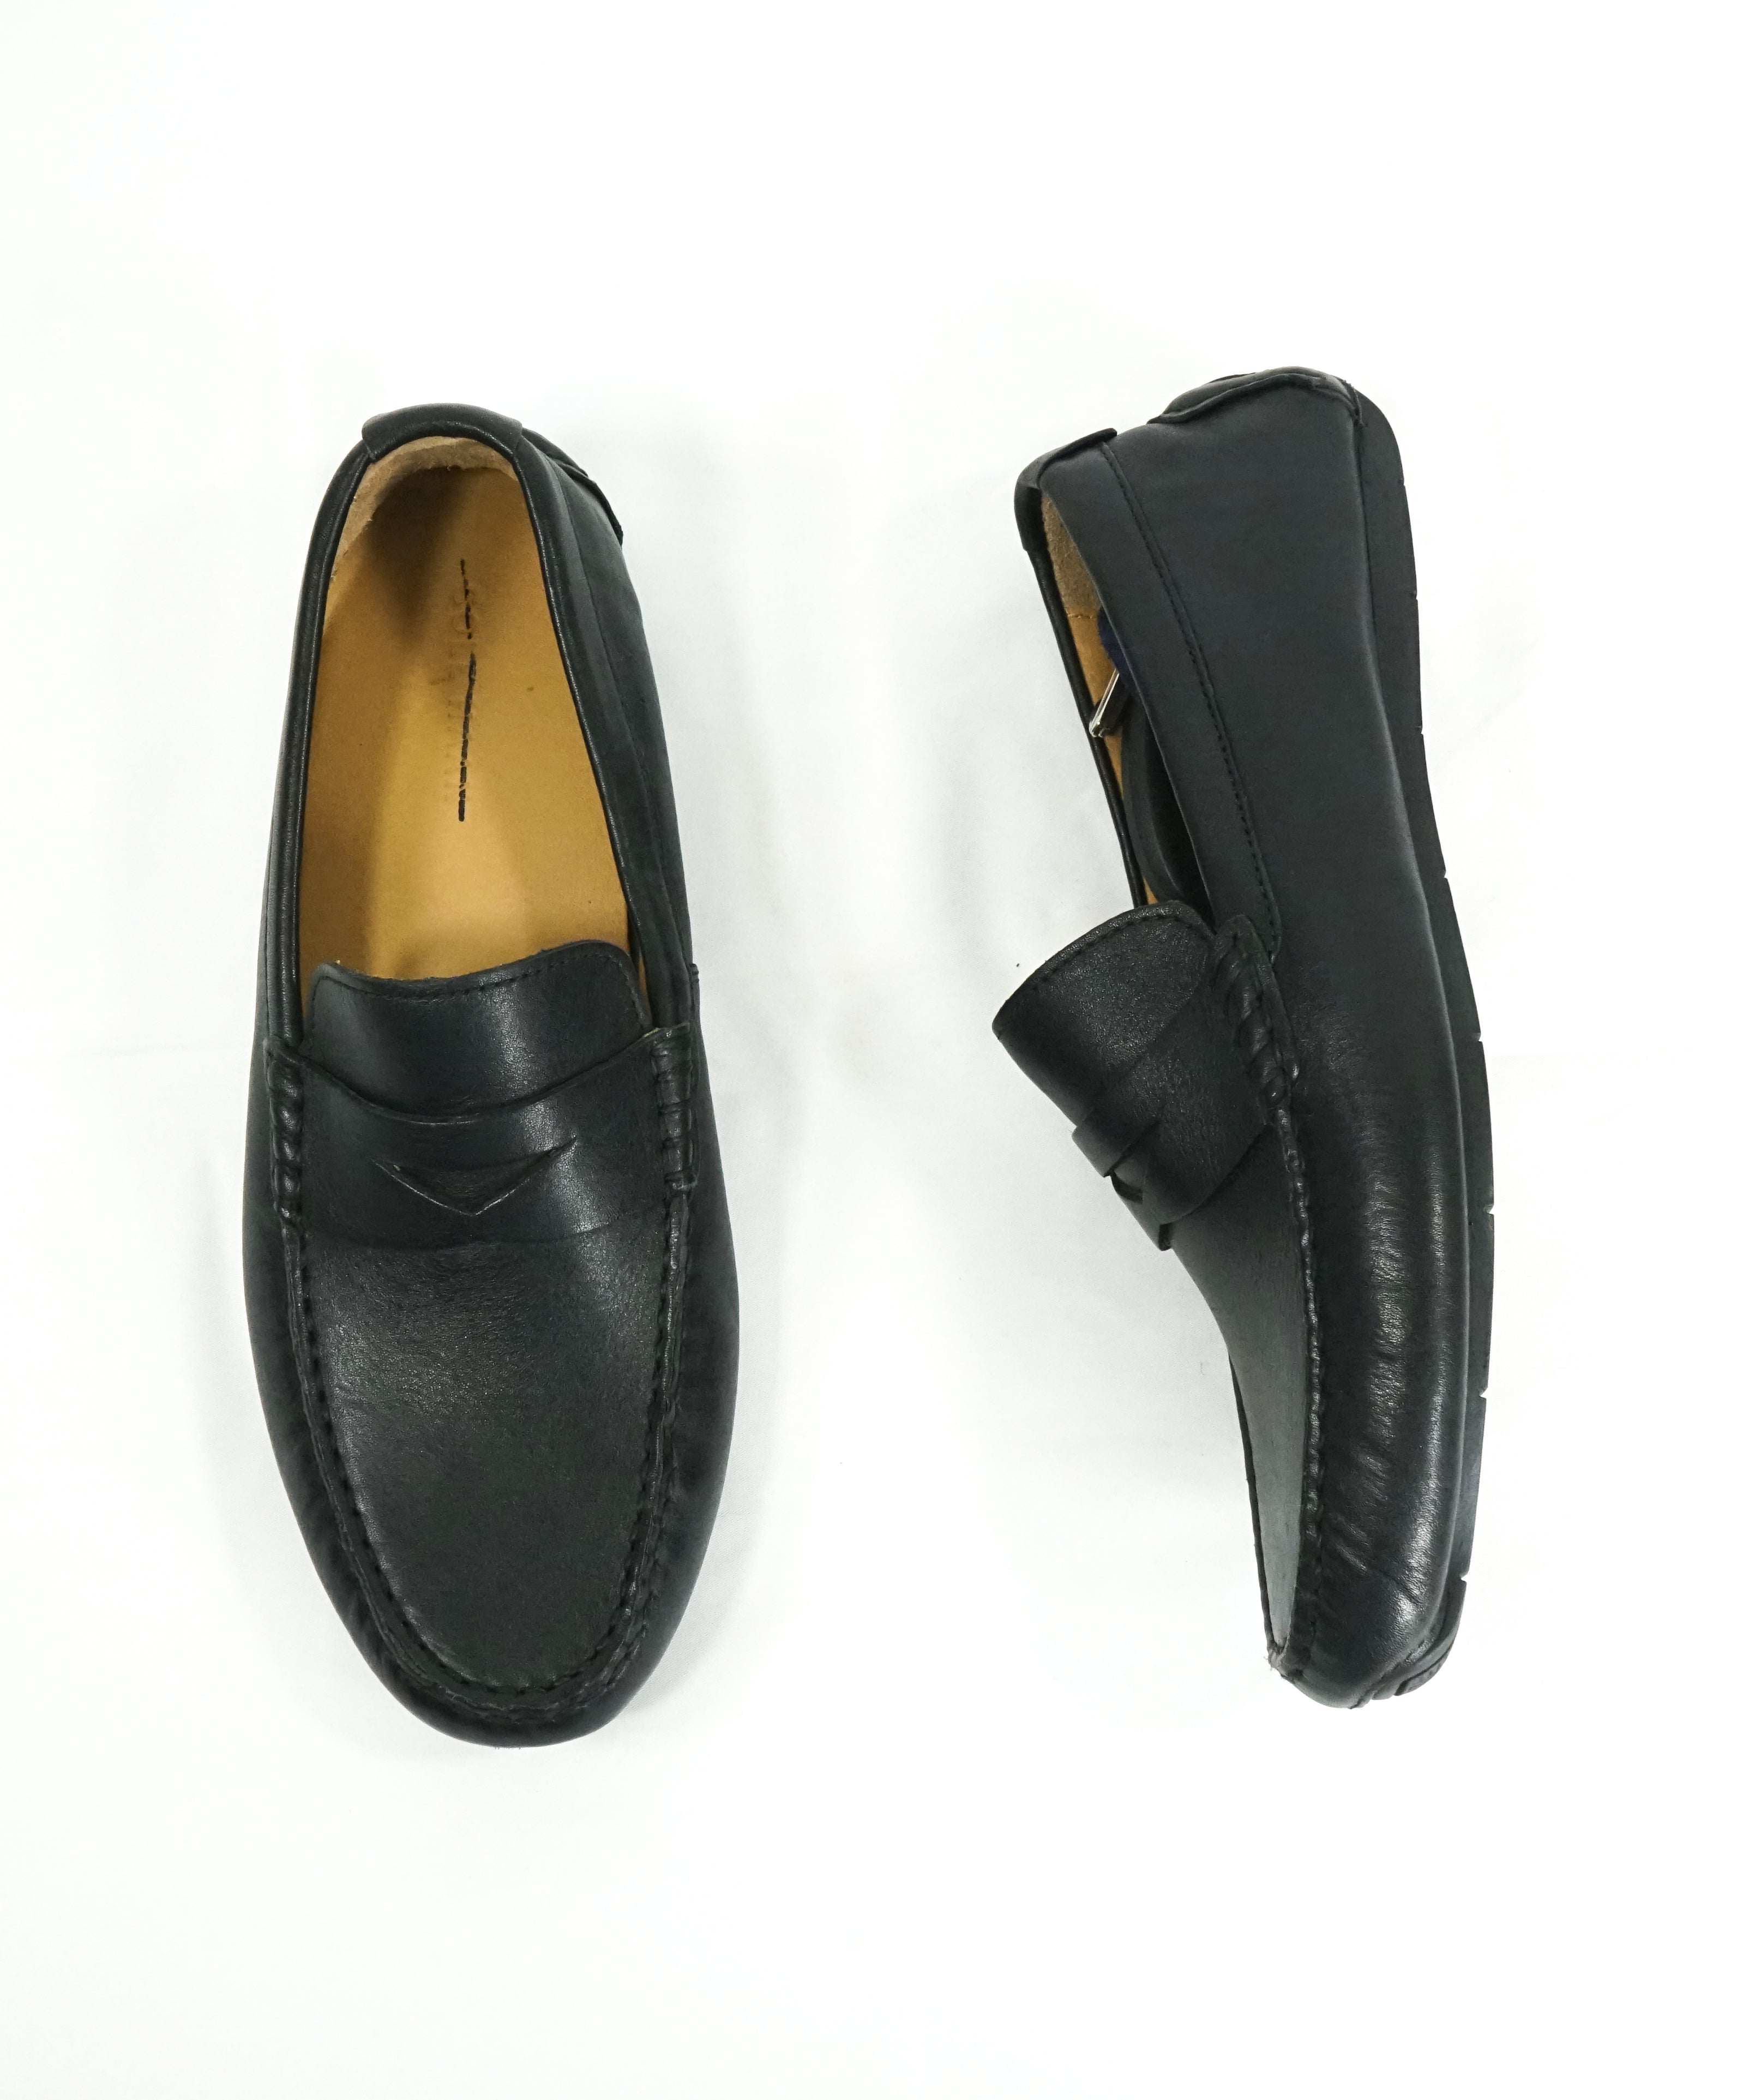 "COLE HAAN - ""Kelson"" Black Padded Insole Penny Loafers - 8"